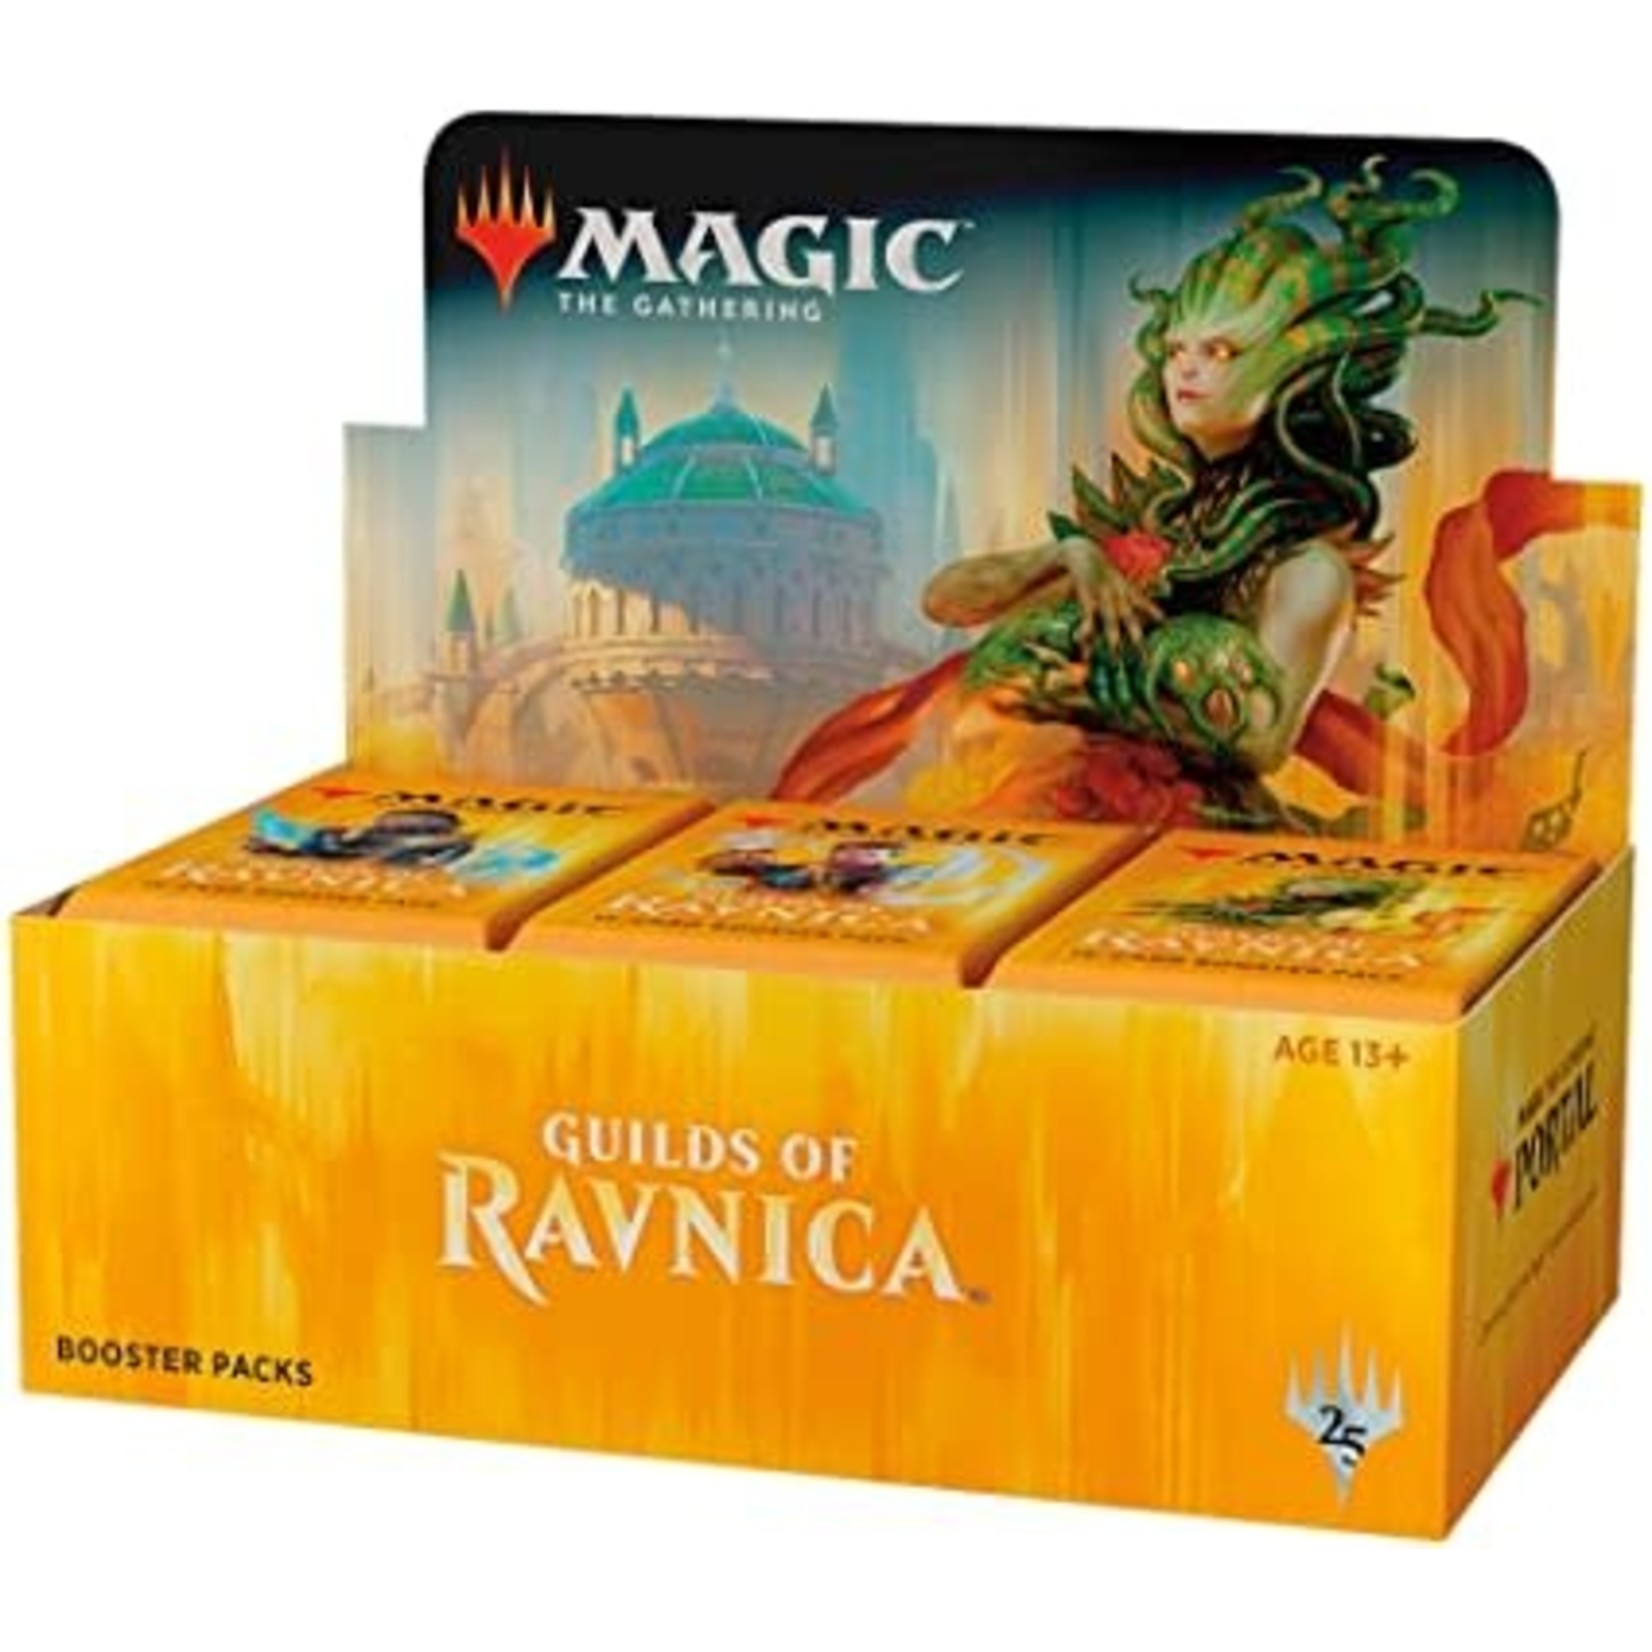 Wizards of the Coast Guilds of Ravnica Booster Box